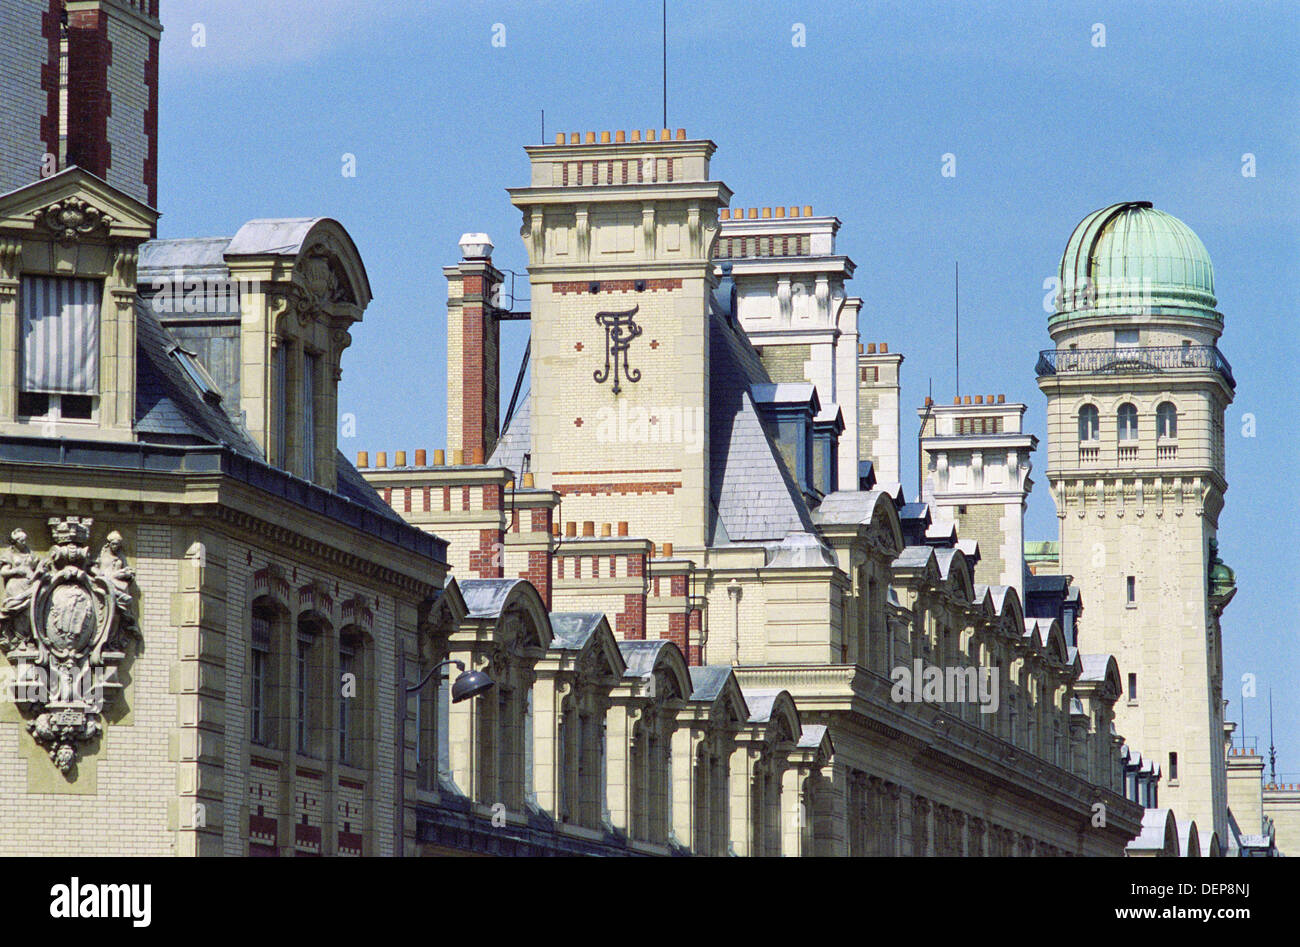 Tower with Observatory at the Sorbonne University, Paris, France Stock Photo